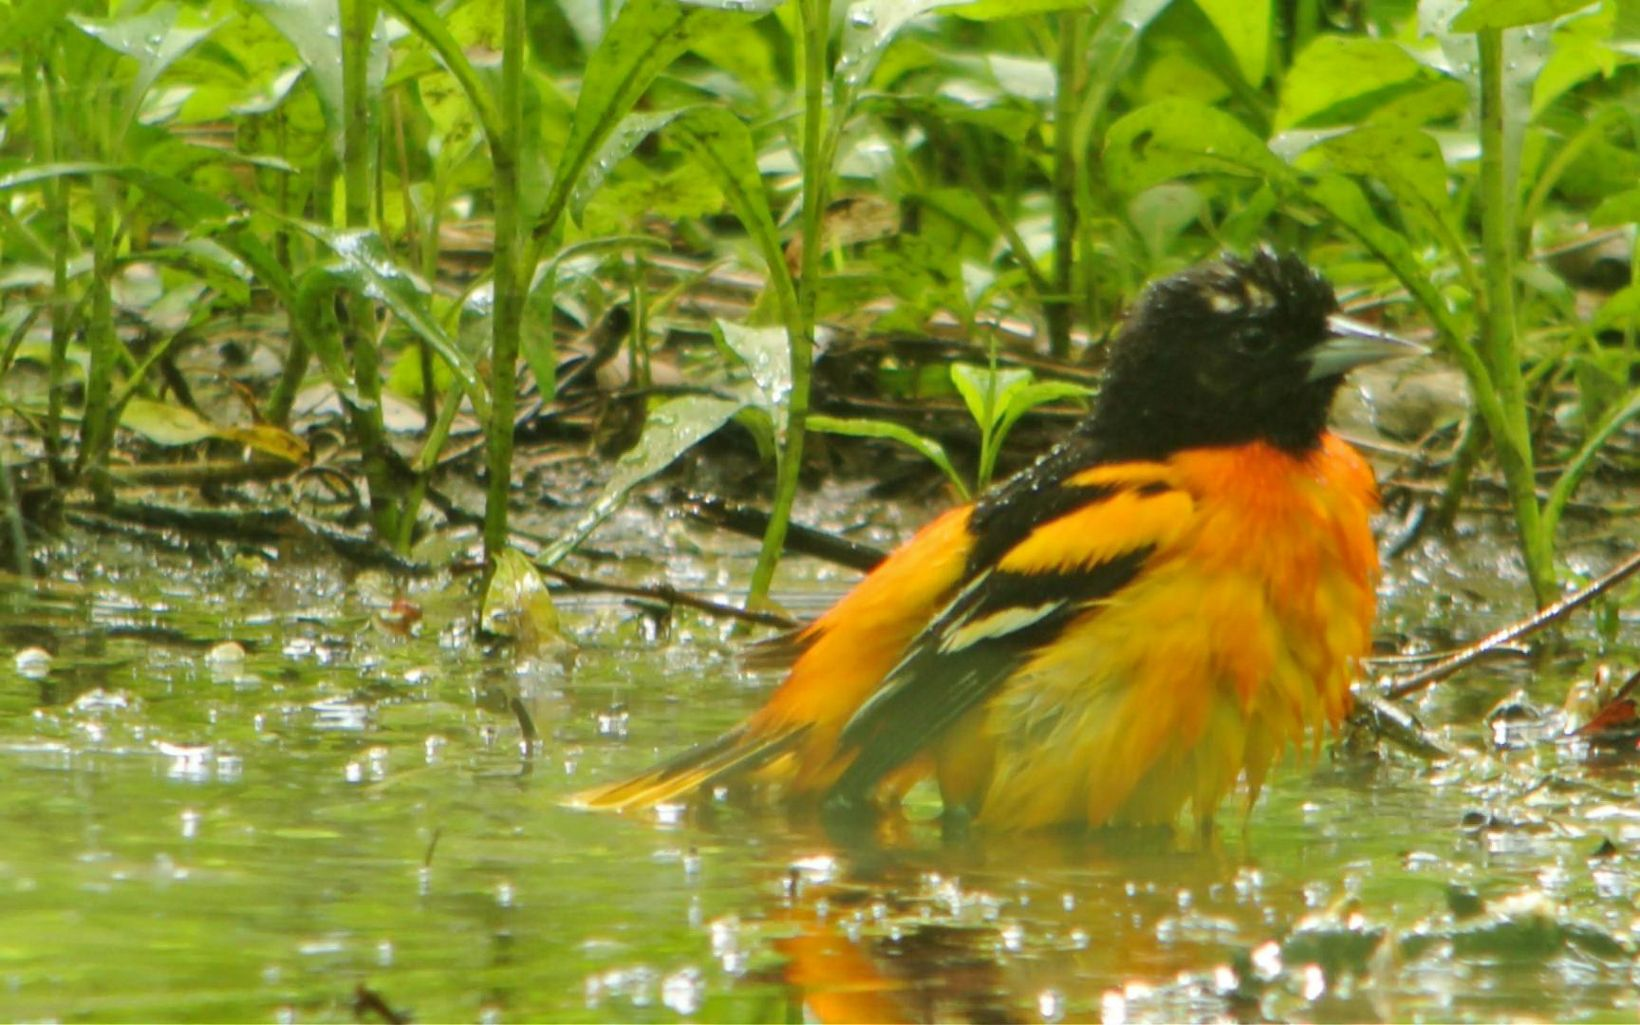 An orange and black bird sits in a puddle.